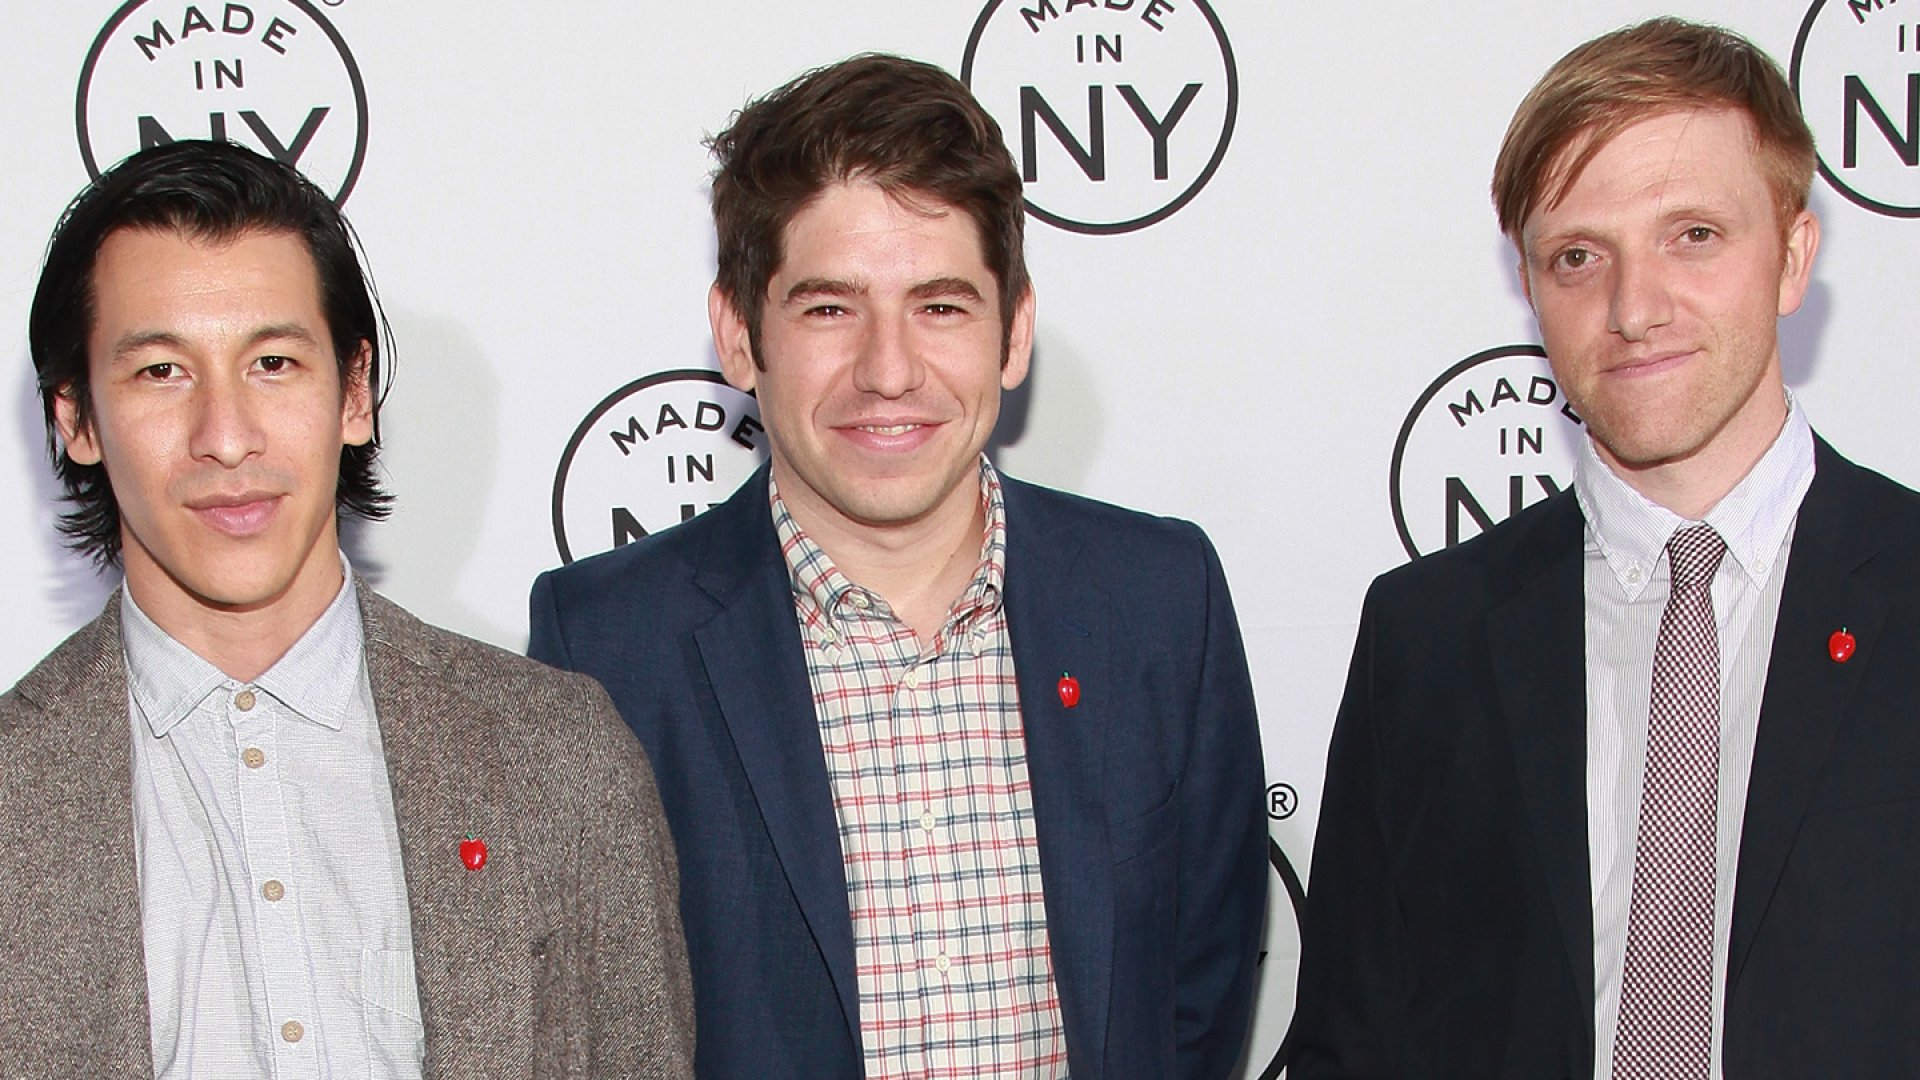 Kickstarter co-founders Perry Chen, Yancey Strickler, and Charles Adler attend the 2012 Made in NY awards.